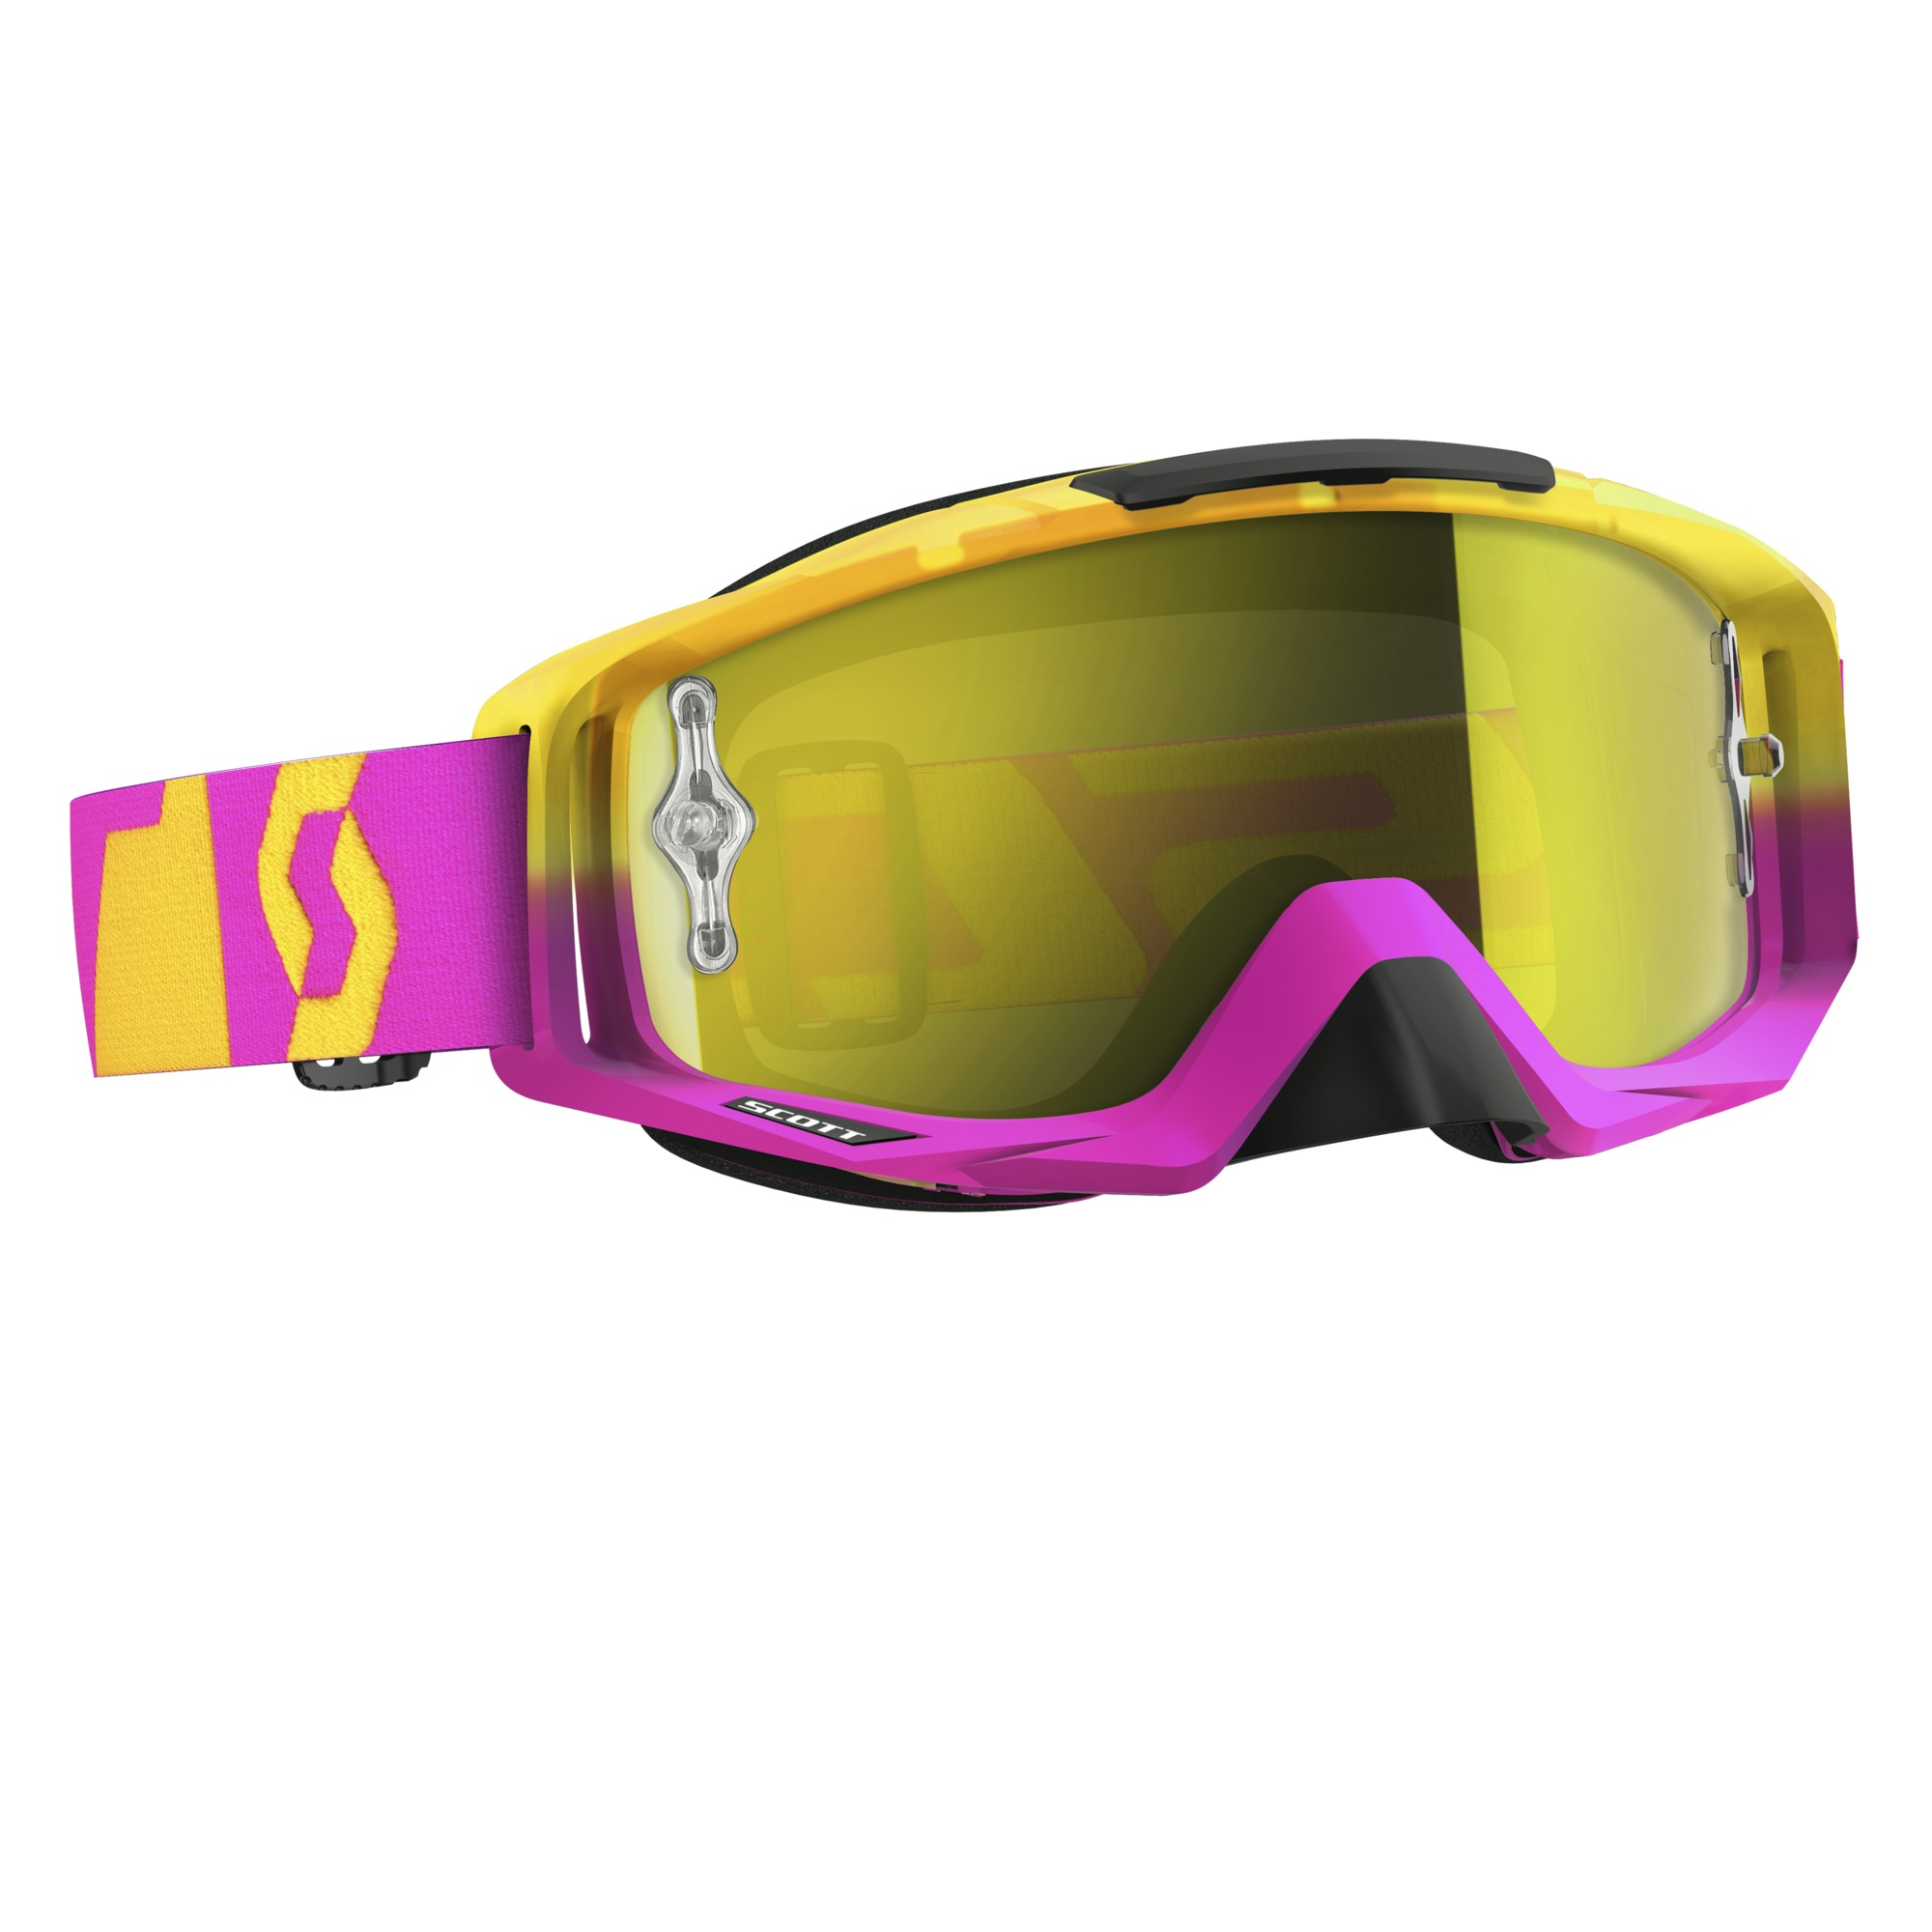 Bike Goggles Overview